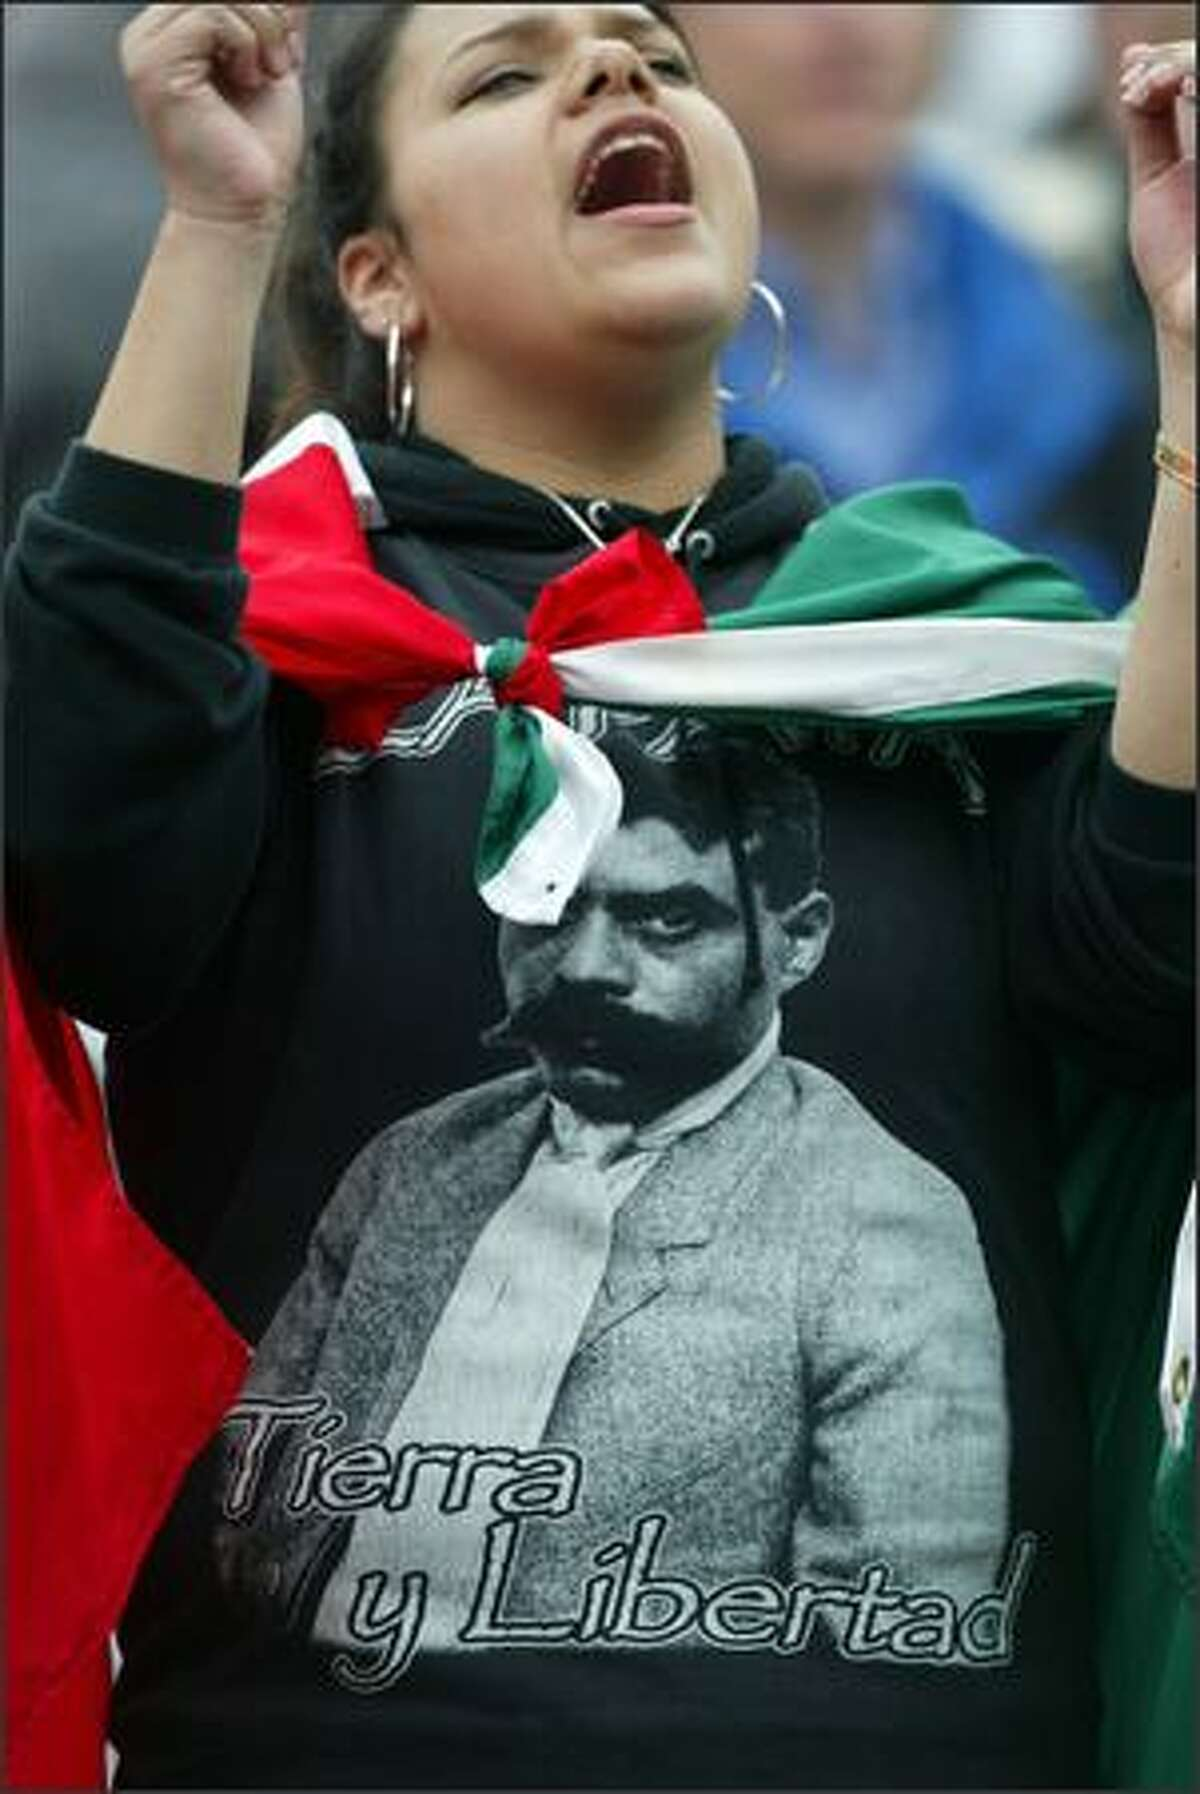 Wearing a shirt bearing the image of Mexican revolutionary Emiliano Zapata and wrapped in a Mexican flag, Elizabeth Del Real, 17, from Guadalahara, Mexico cheers during an immigration reform rally at the Seattle Center on May 1, 2007. Del Real now lives in Lynnwood, Wash.